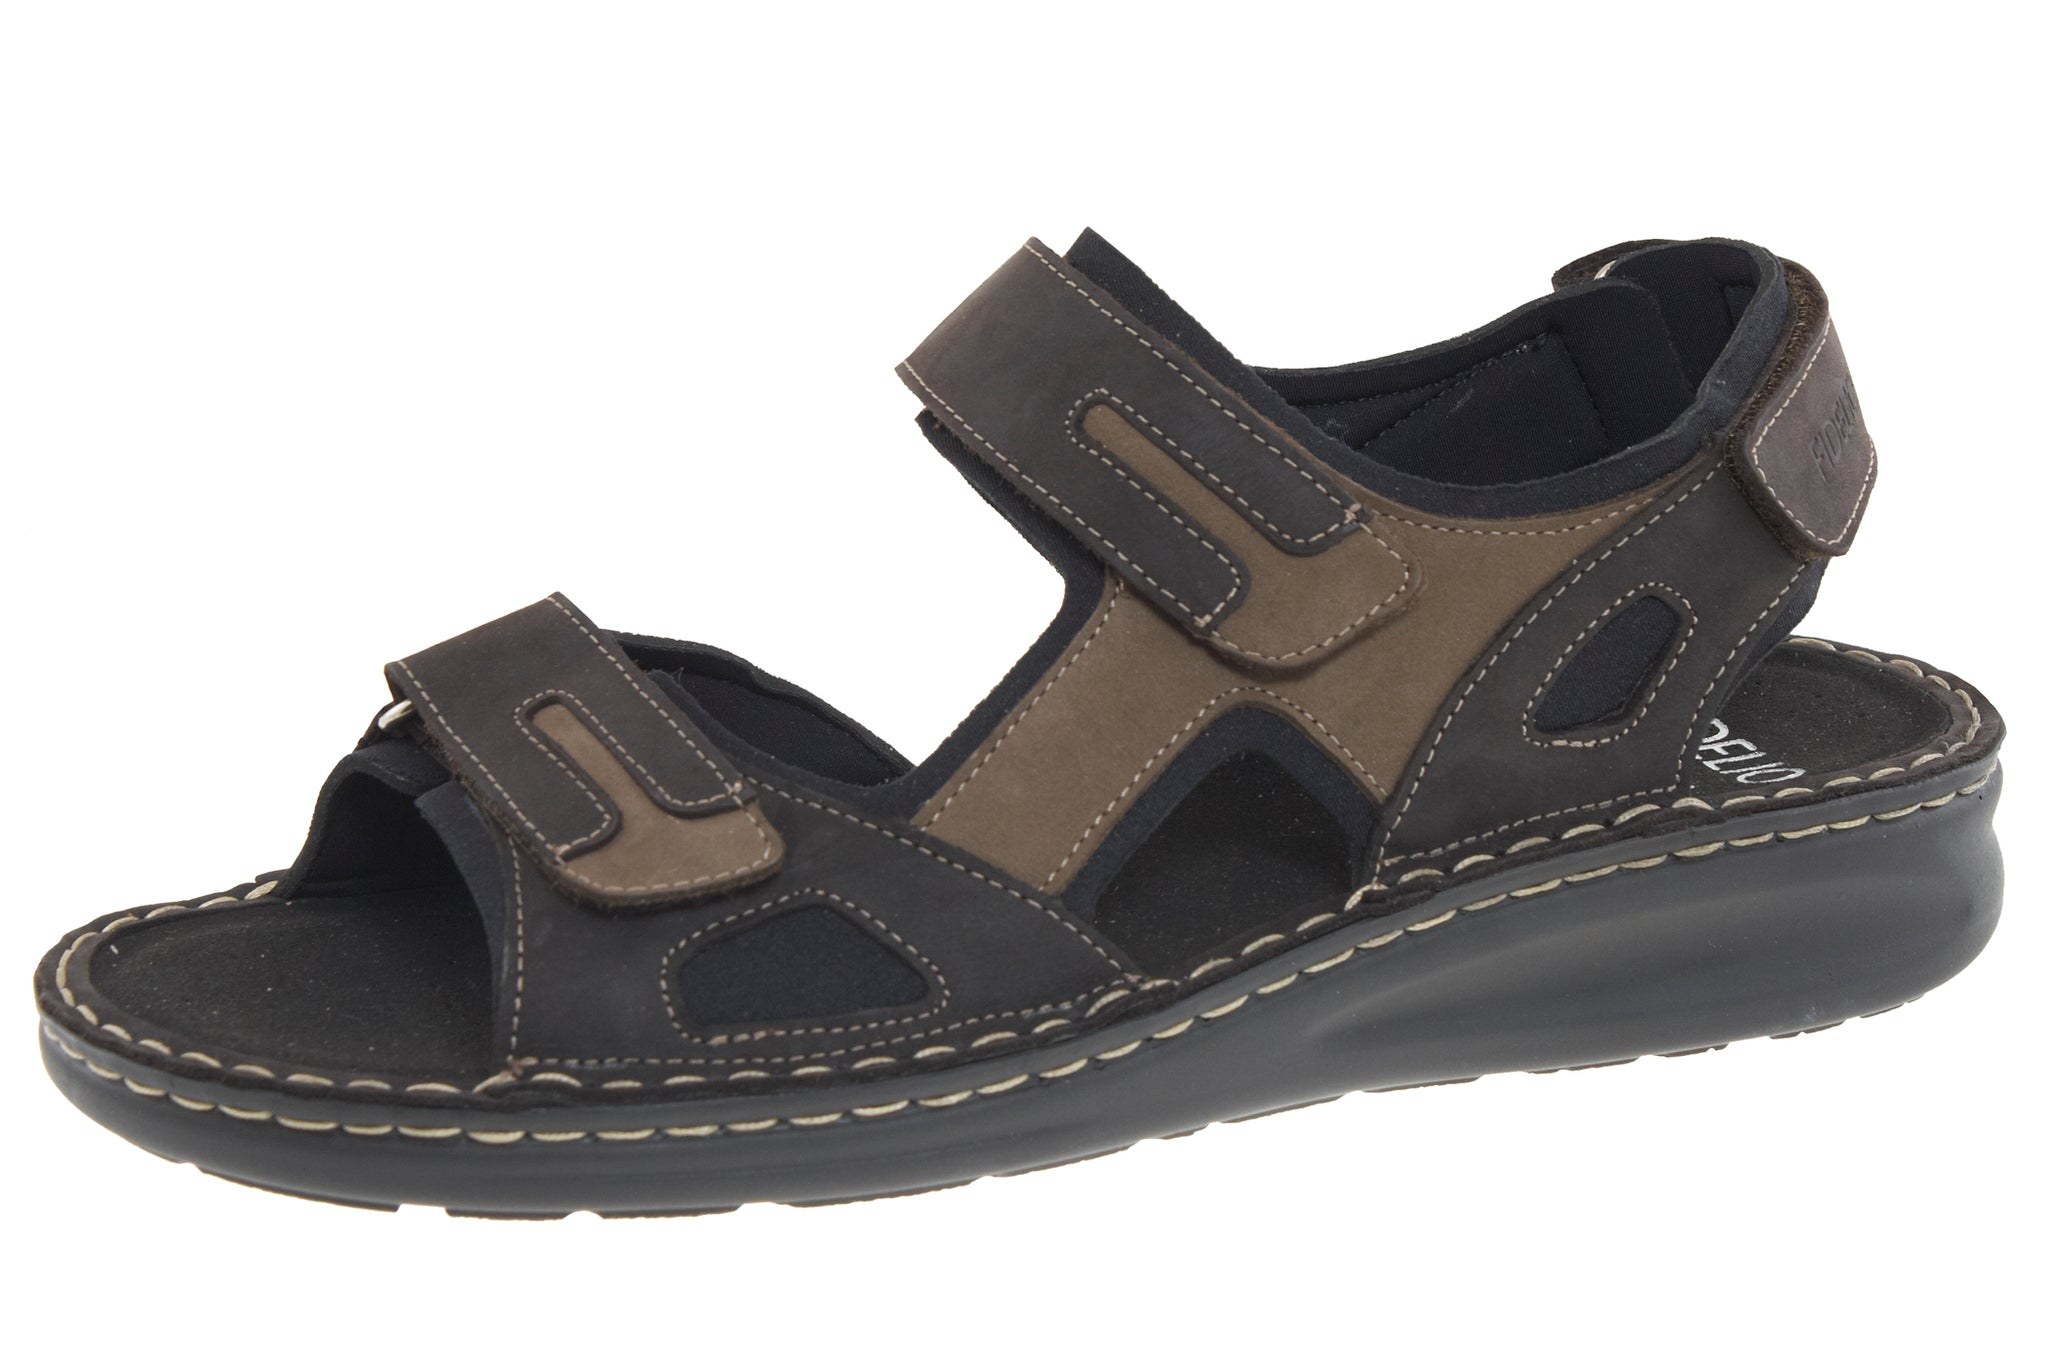 Fidelio 366028-14 Brown Men's Walking Sandal with removable sole - Coordinator's Shop